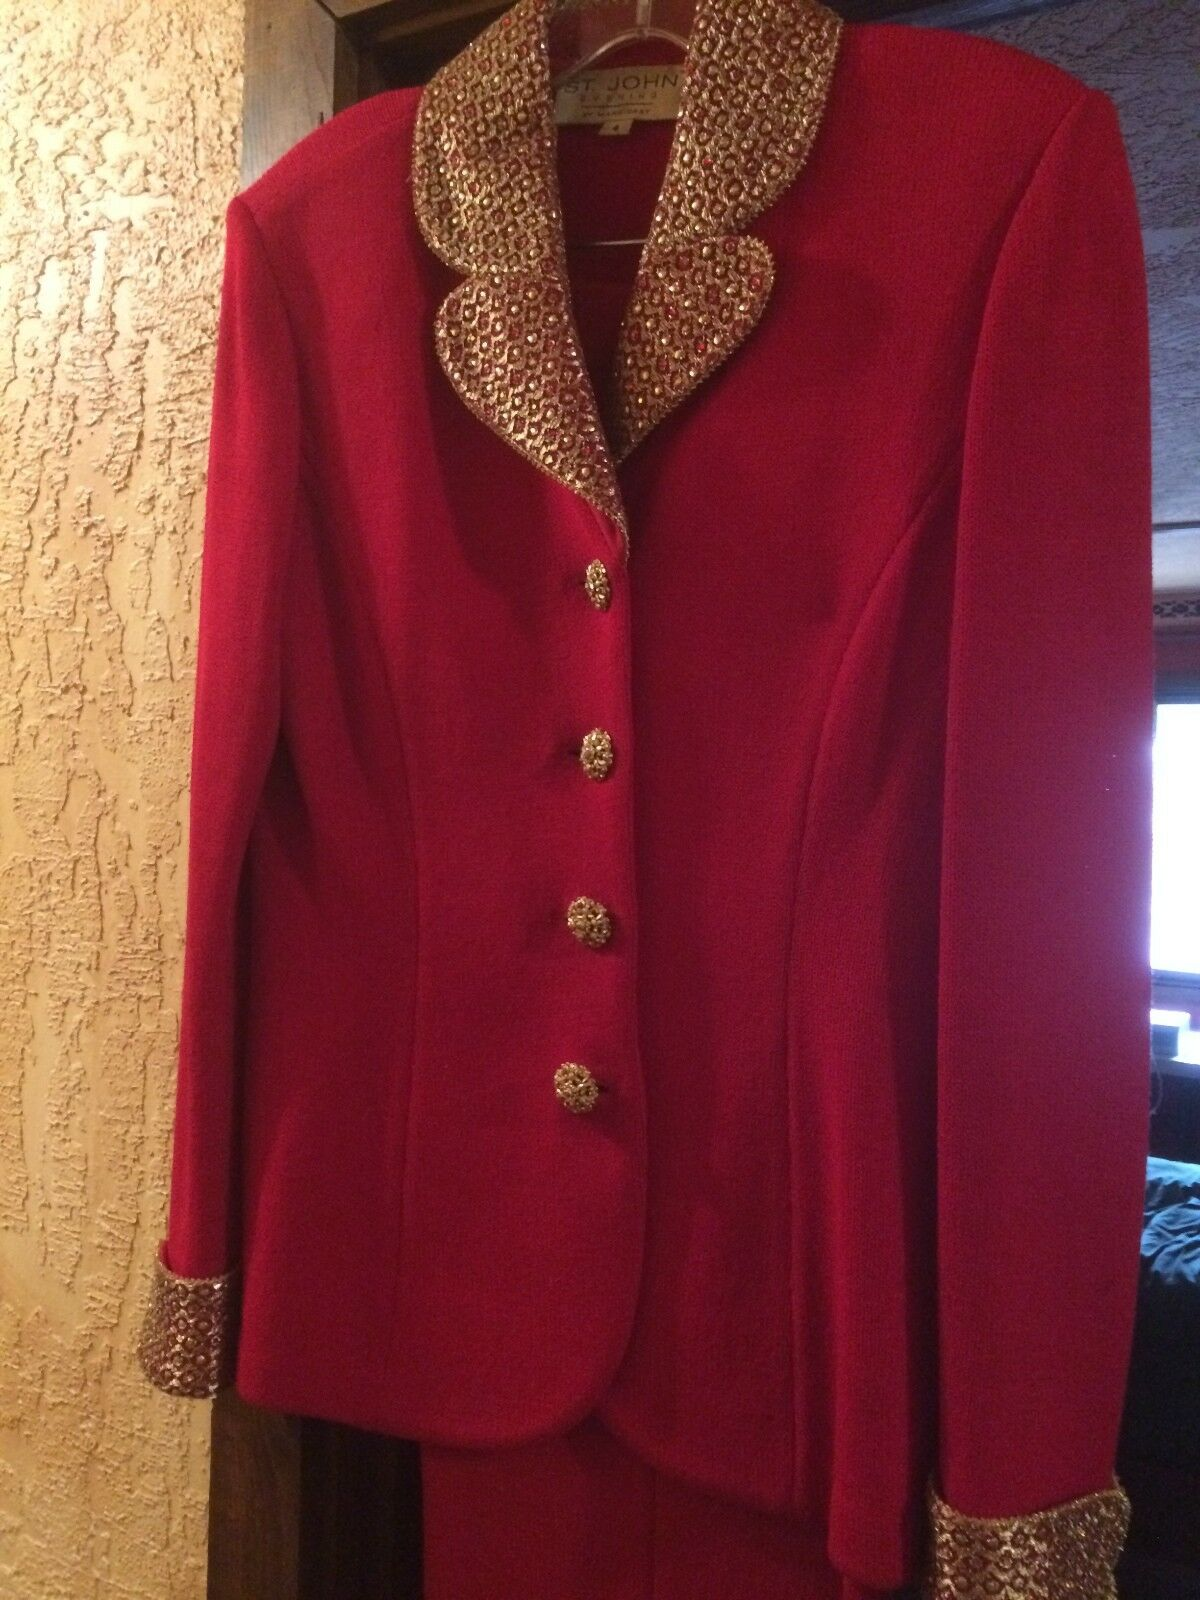 St. John Suit, Classic, gold embroidery